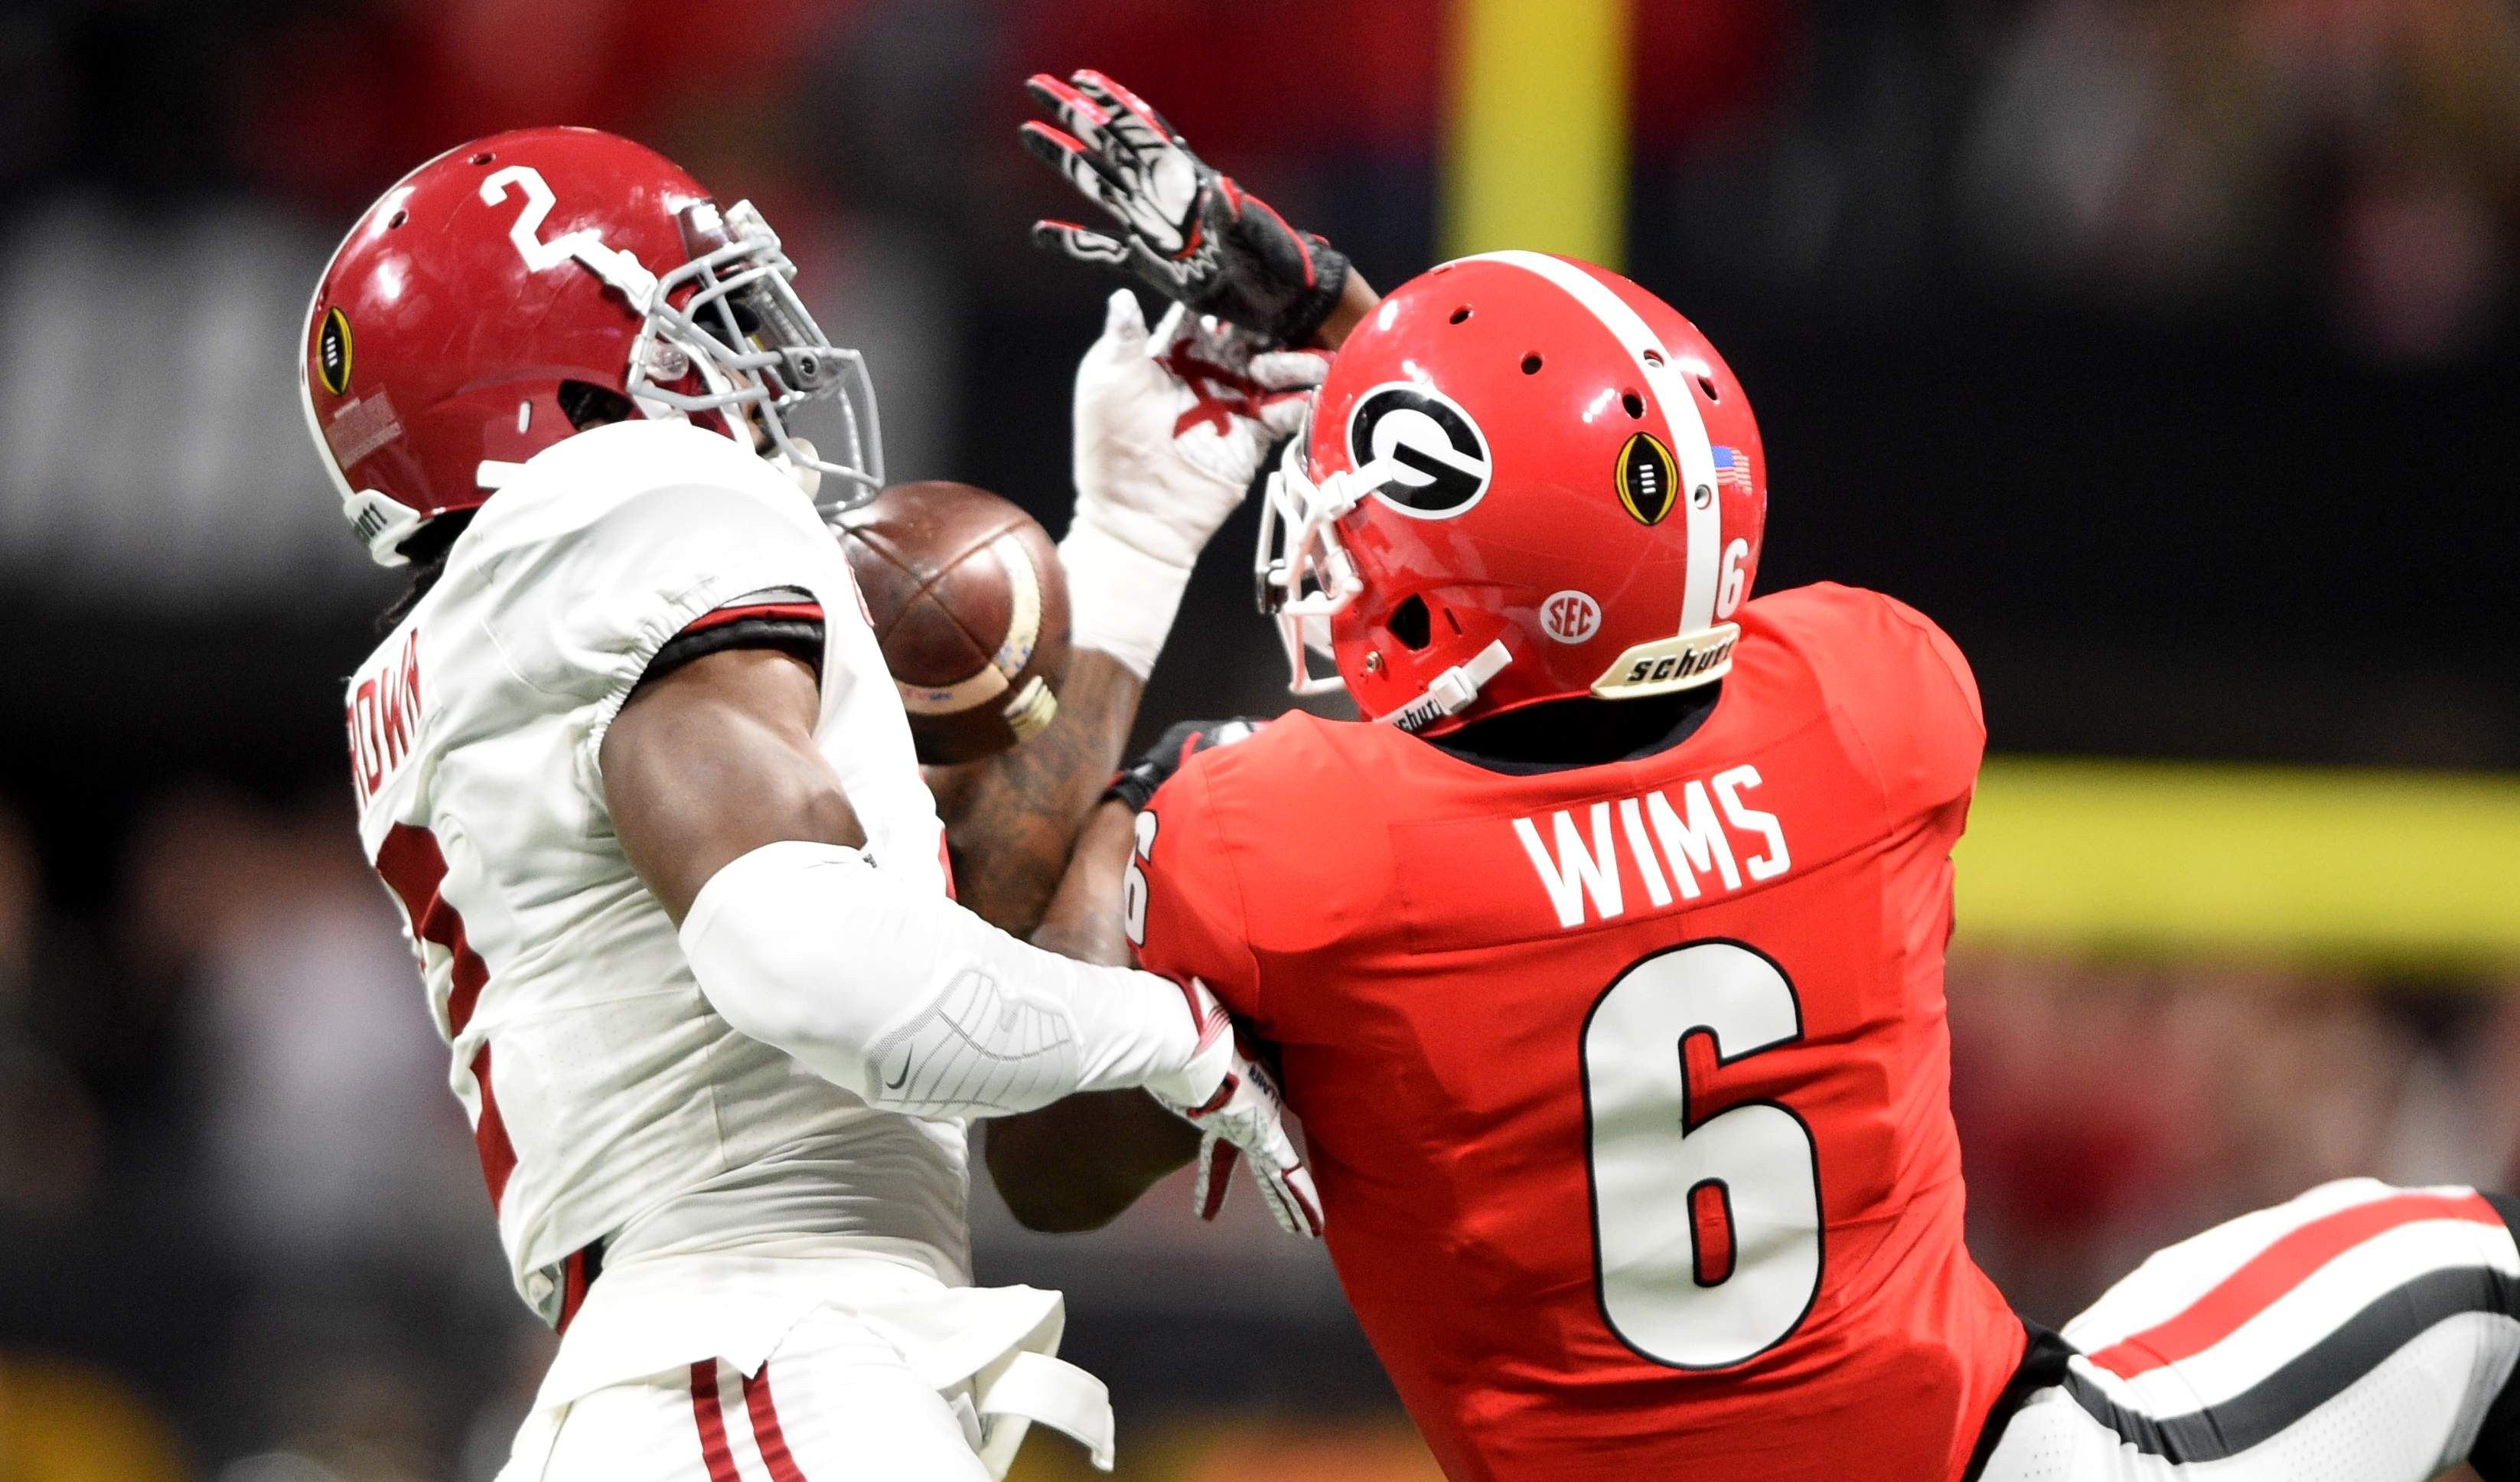 Georgia's Javon Wims, right, can't hang onto a pass that bounces into the arms of Alabama's Tony Brown for the interception early in the first period during the 2018 College Football Playoff National Championship at Mercedes-Benz Stadium in Atlanta, Ga., Monday evening January 8, 2018. MICHAEL HOLAHAN/AUGUSTA CHRONICLE